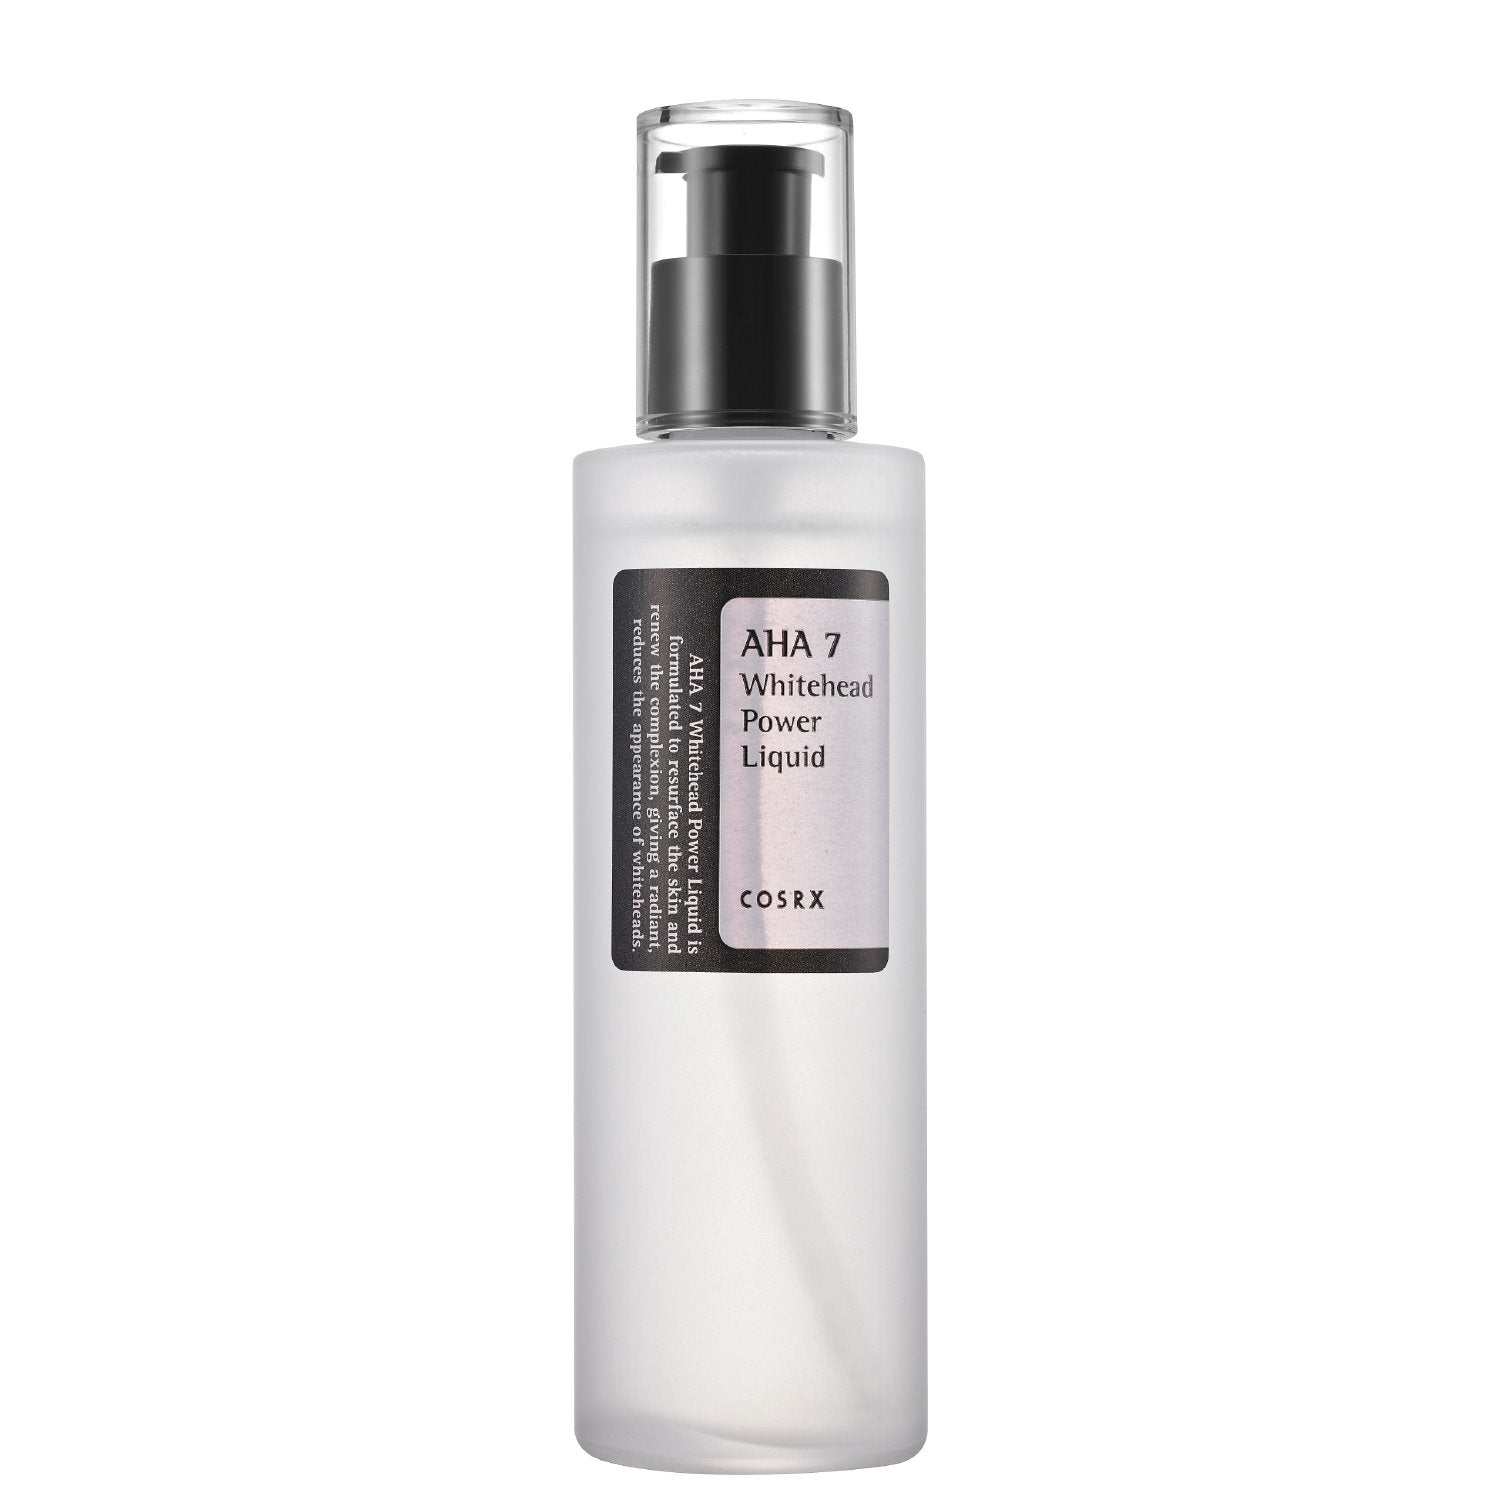 AHA 7 Whitehead Power Liquid (100ml) Toner COSRX